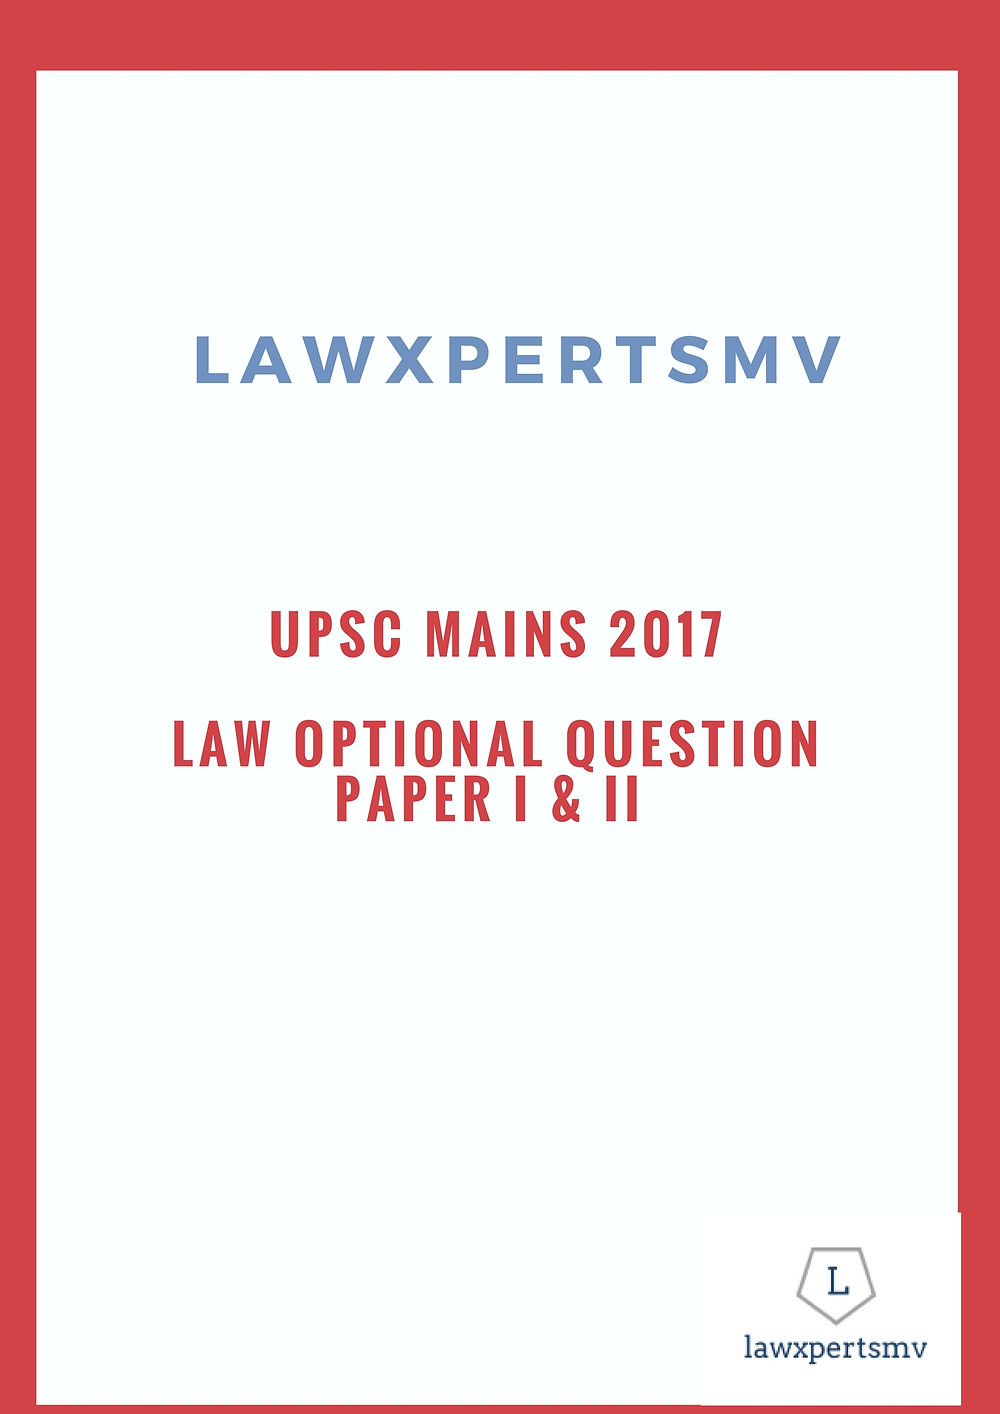 UPSC Mains 2017 Law Optional Question Paper